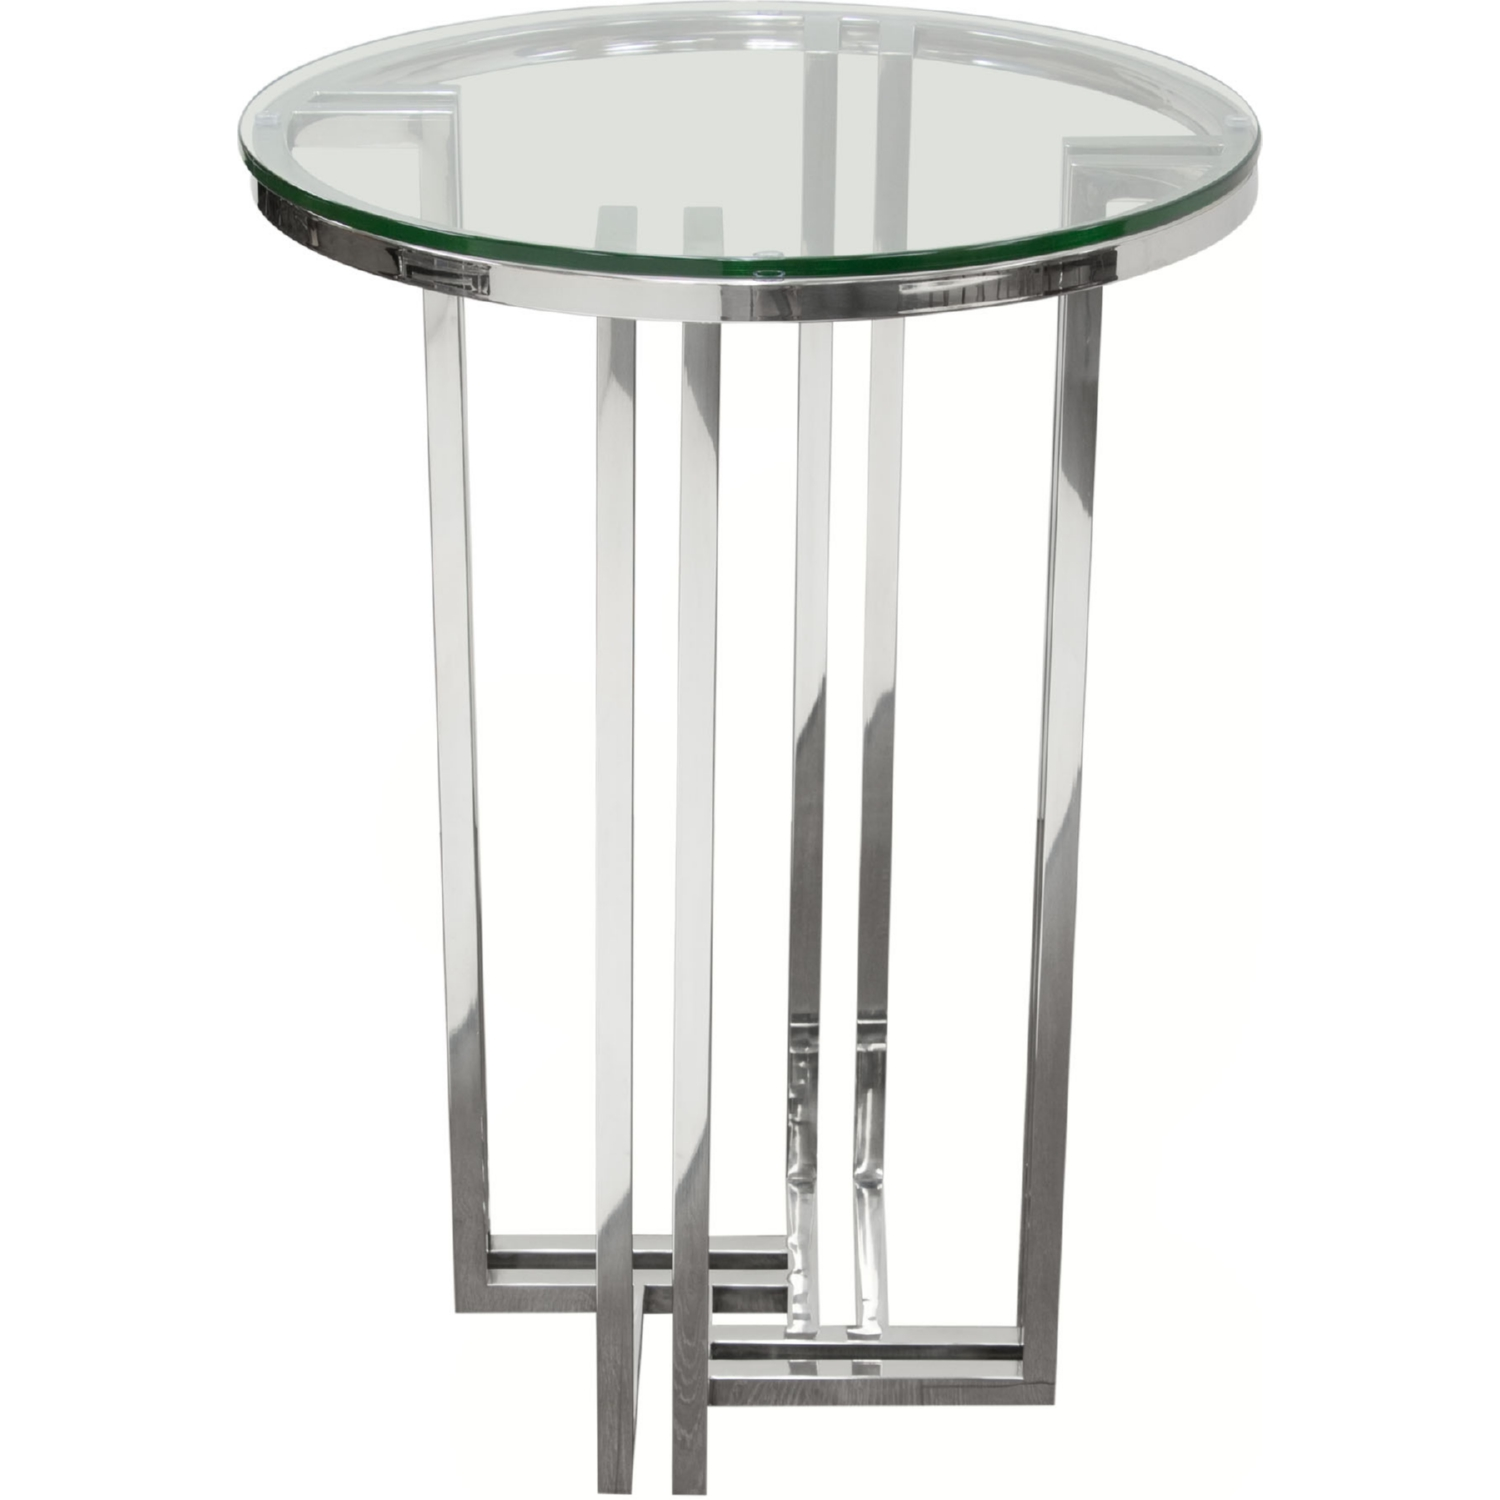 Diamond Sofa DEKO Polished Stainless Steel Round Accent Table W/ Tempered Glass  Top